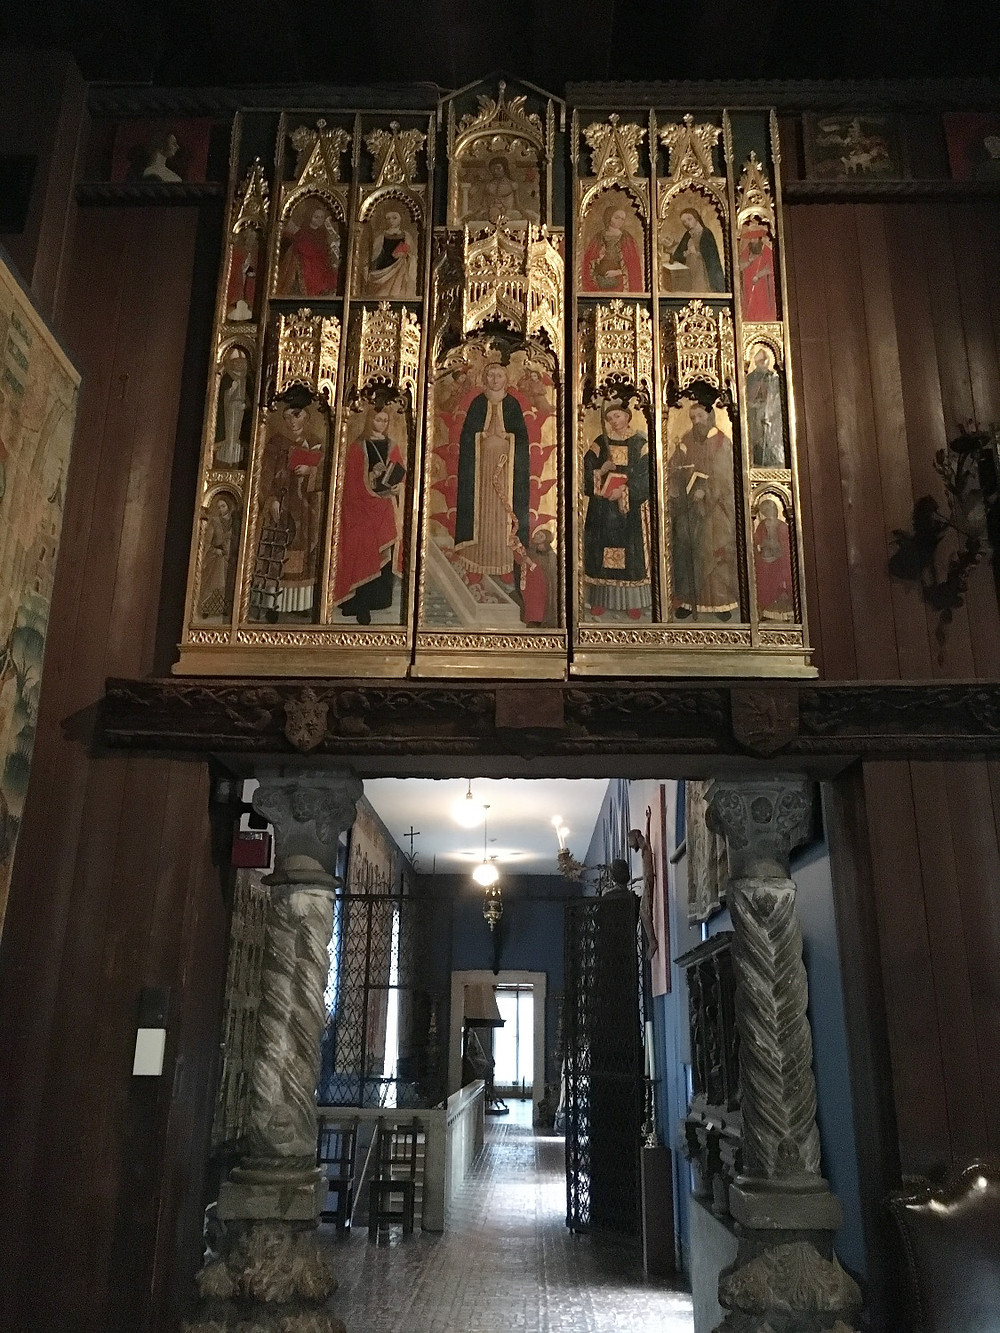 View from inside the Gothic Room into the adjourning passageway. Photo by Diana Dinverno.